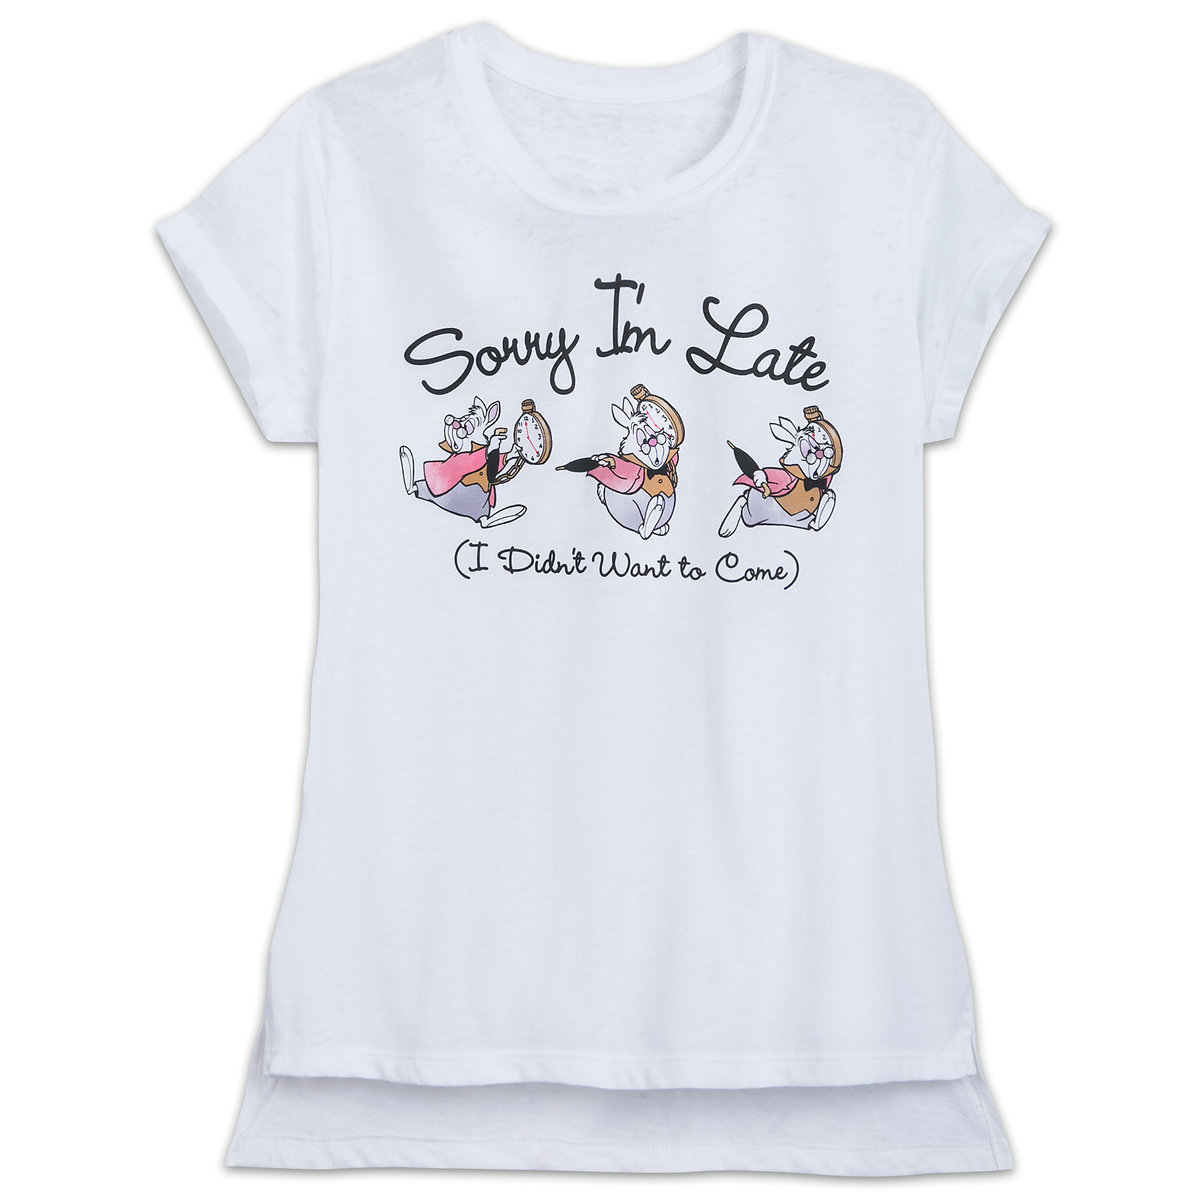 3f930d307d3 Product Image of White Rabbit T-Shirt for Women - Alice in Wonderland # 1